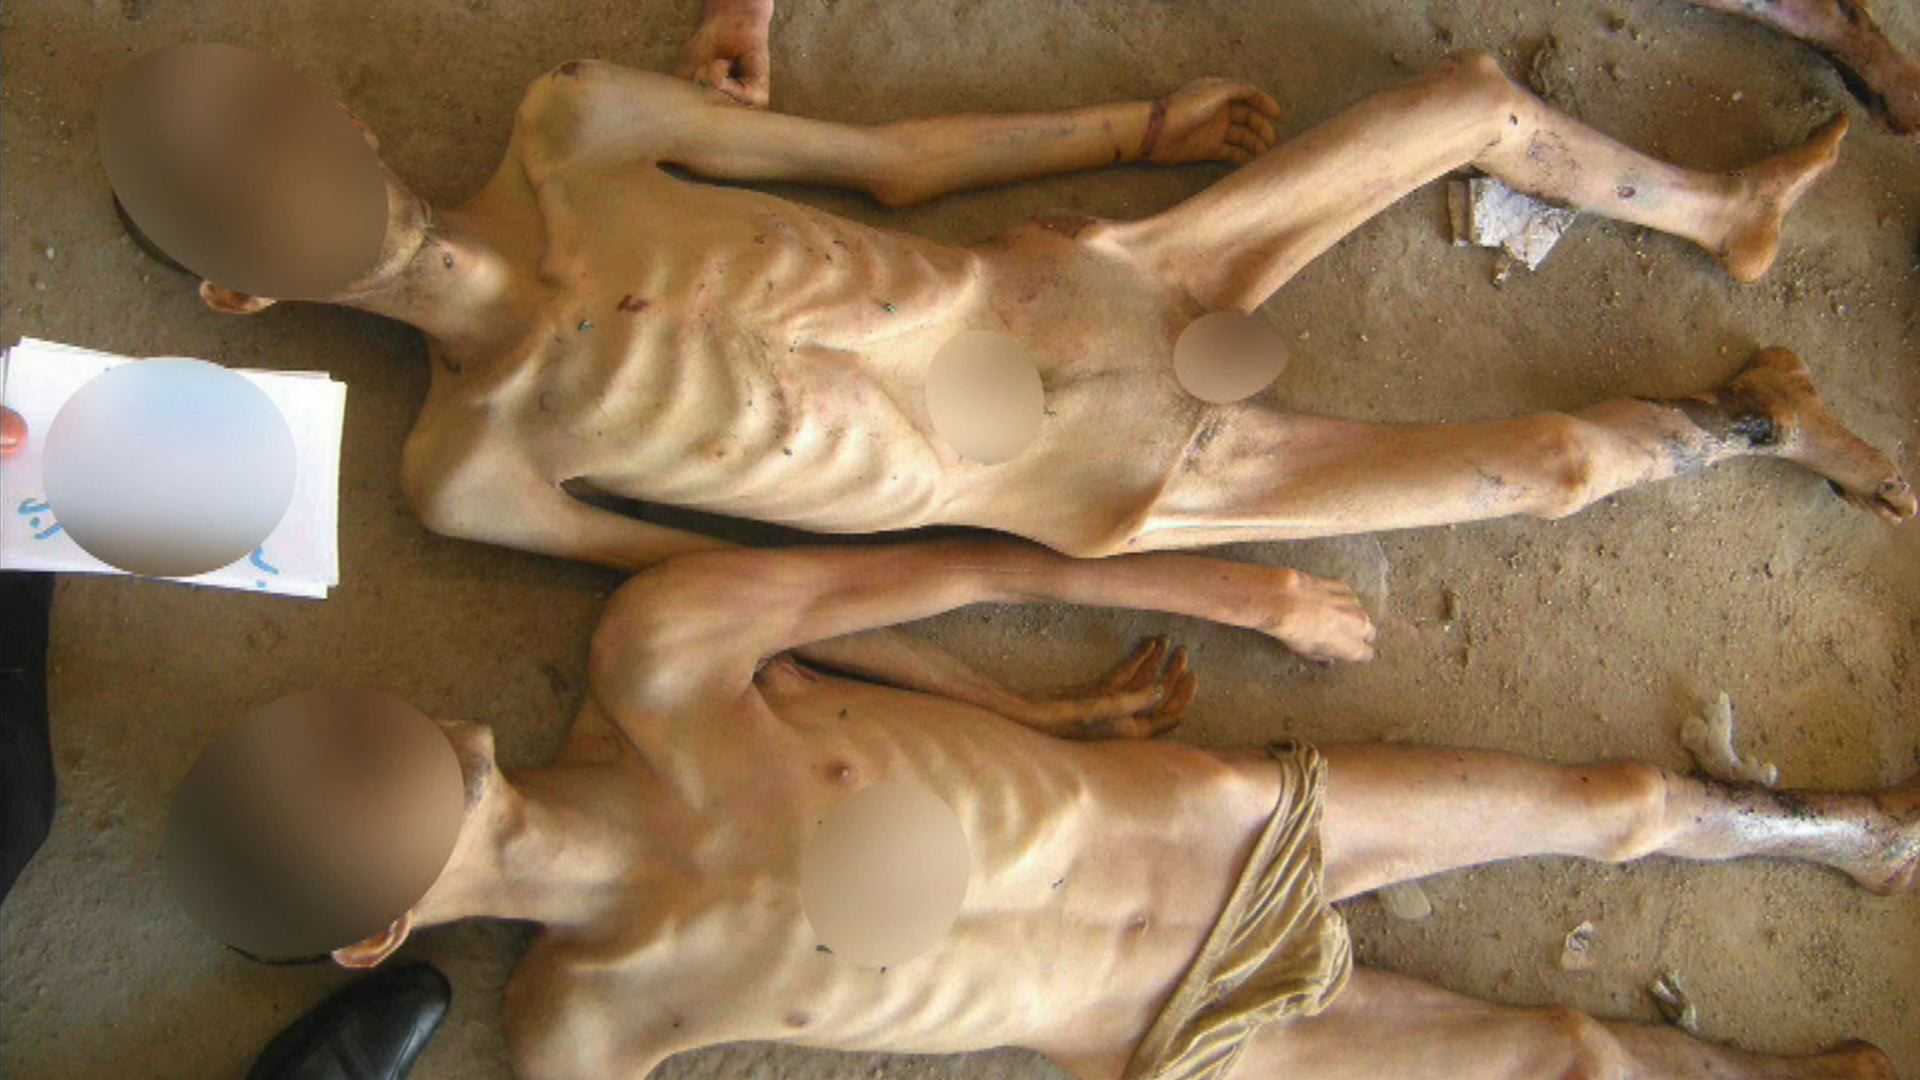 Selected frame from video story UN / SYRIA TORTURE